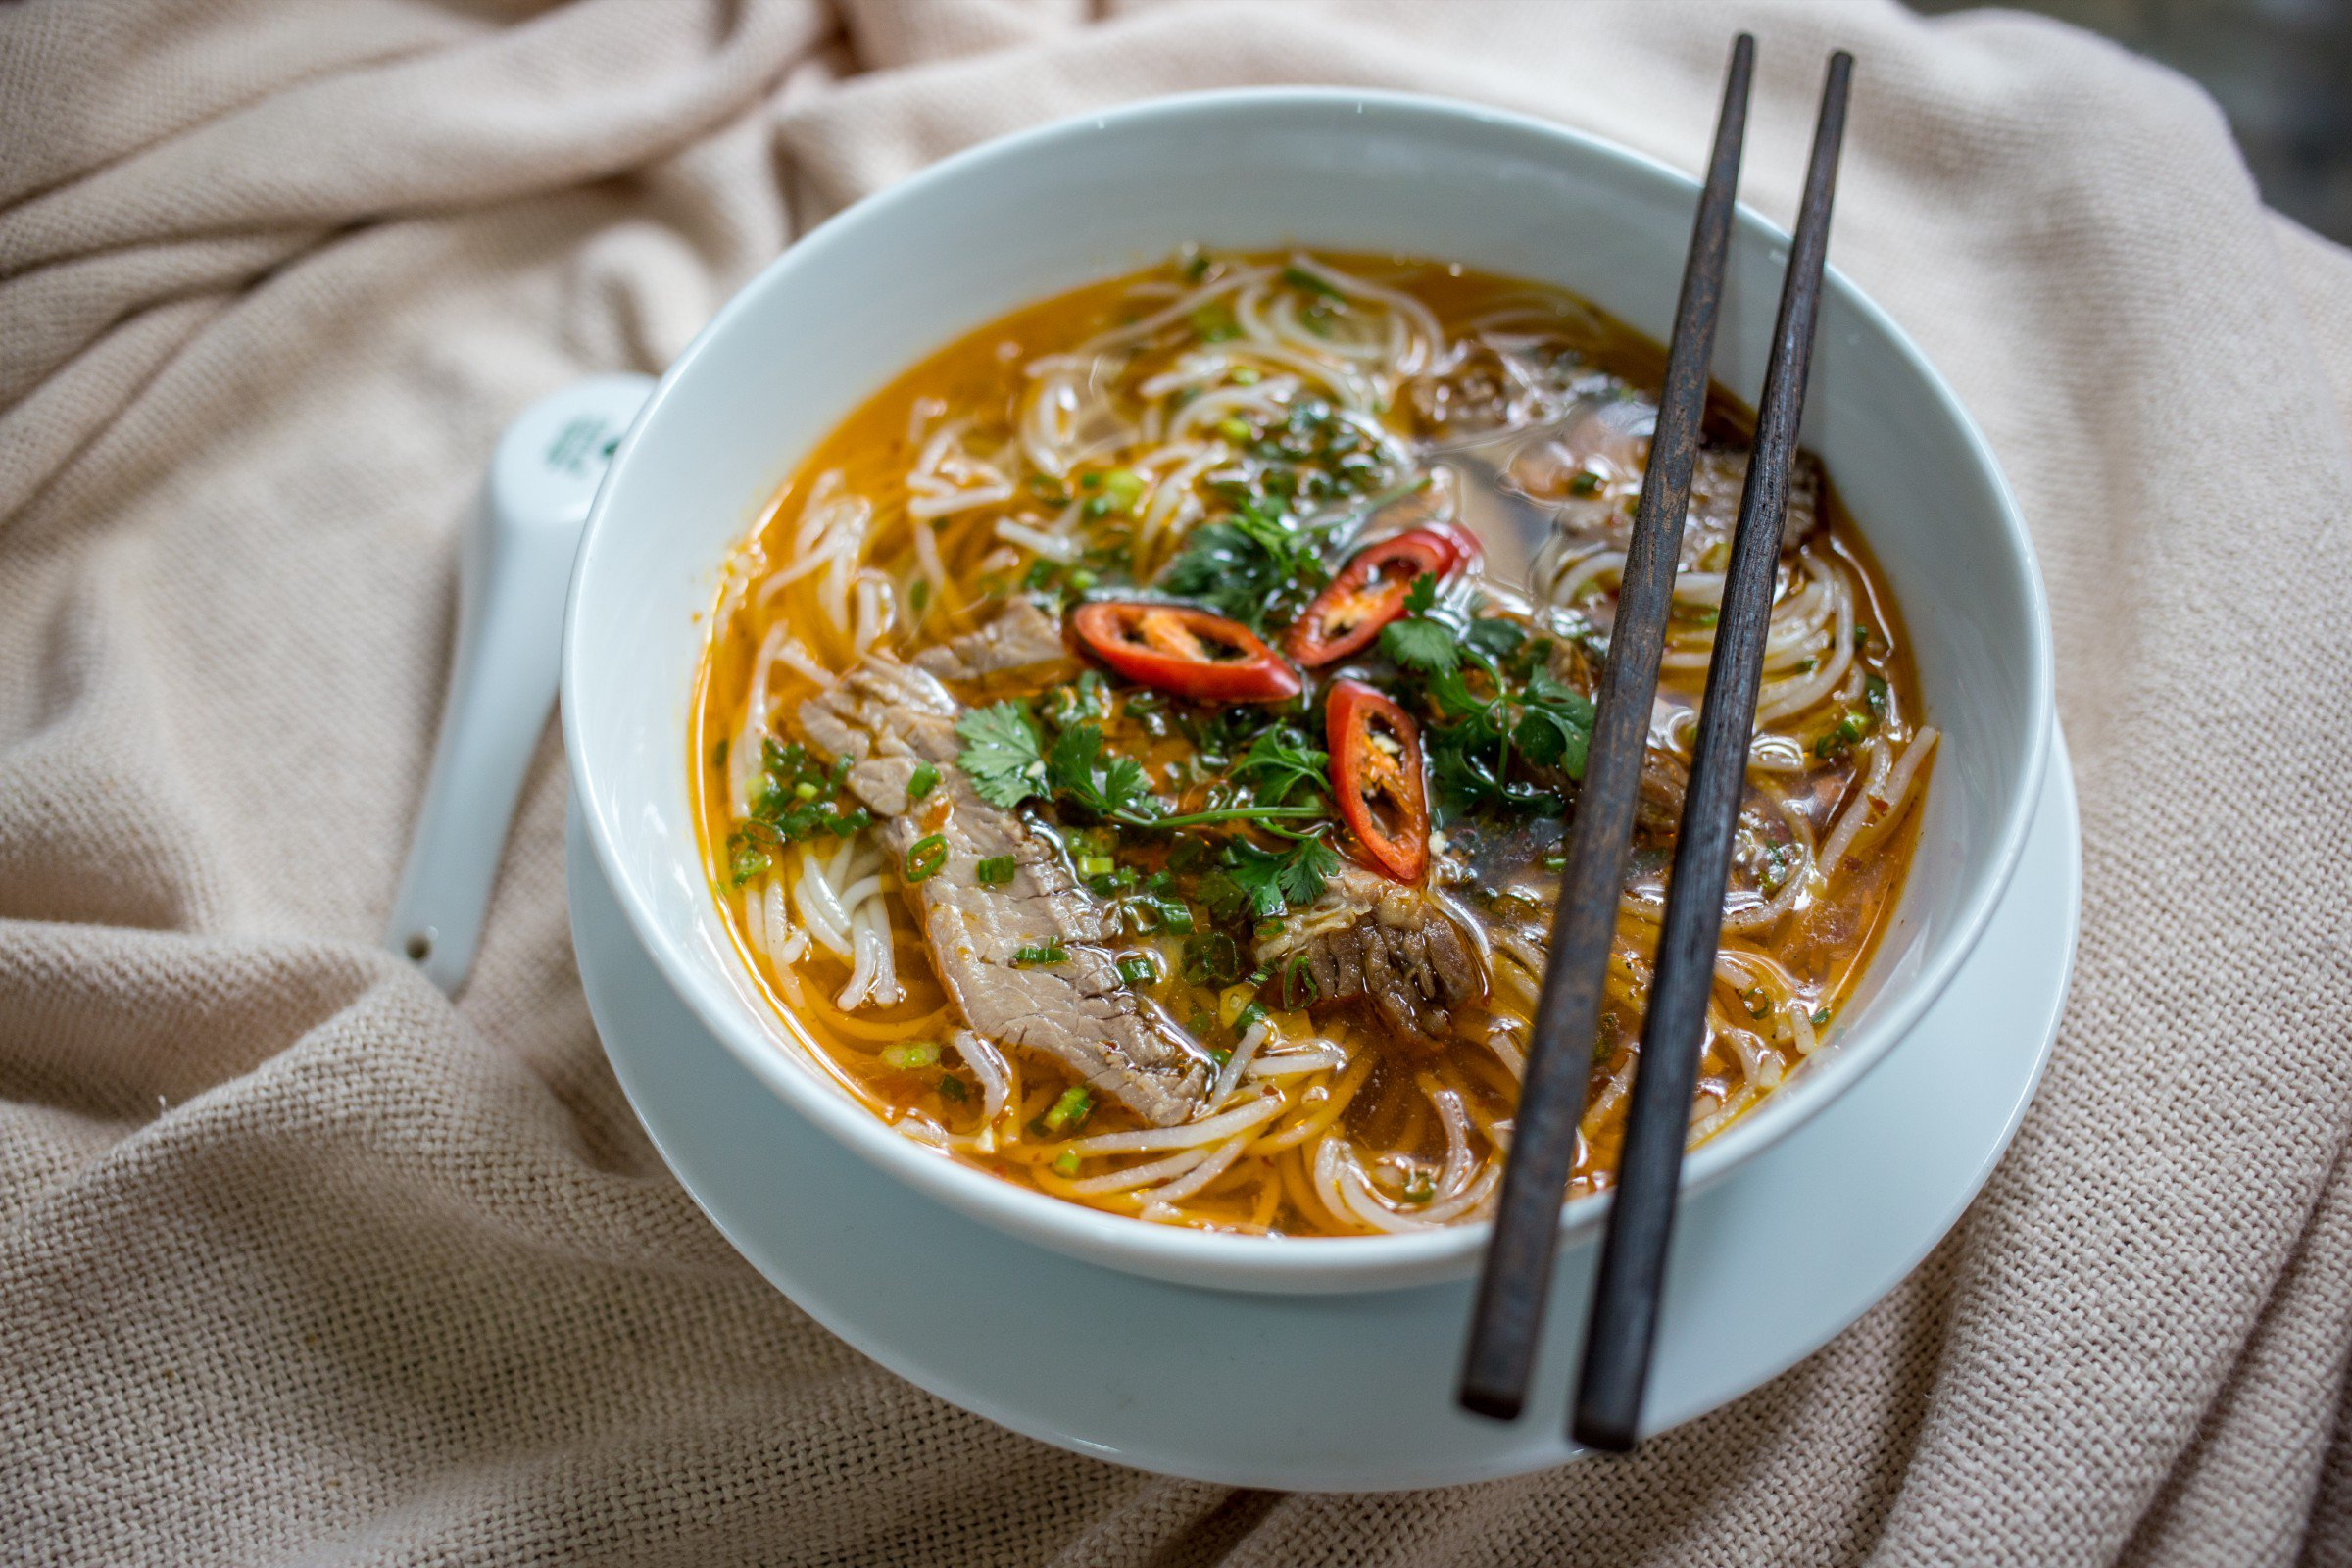 The Top 9 Popular Vietnamese Dishes You Must Try - The Christina's Blog